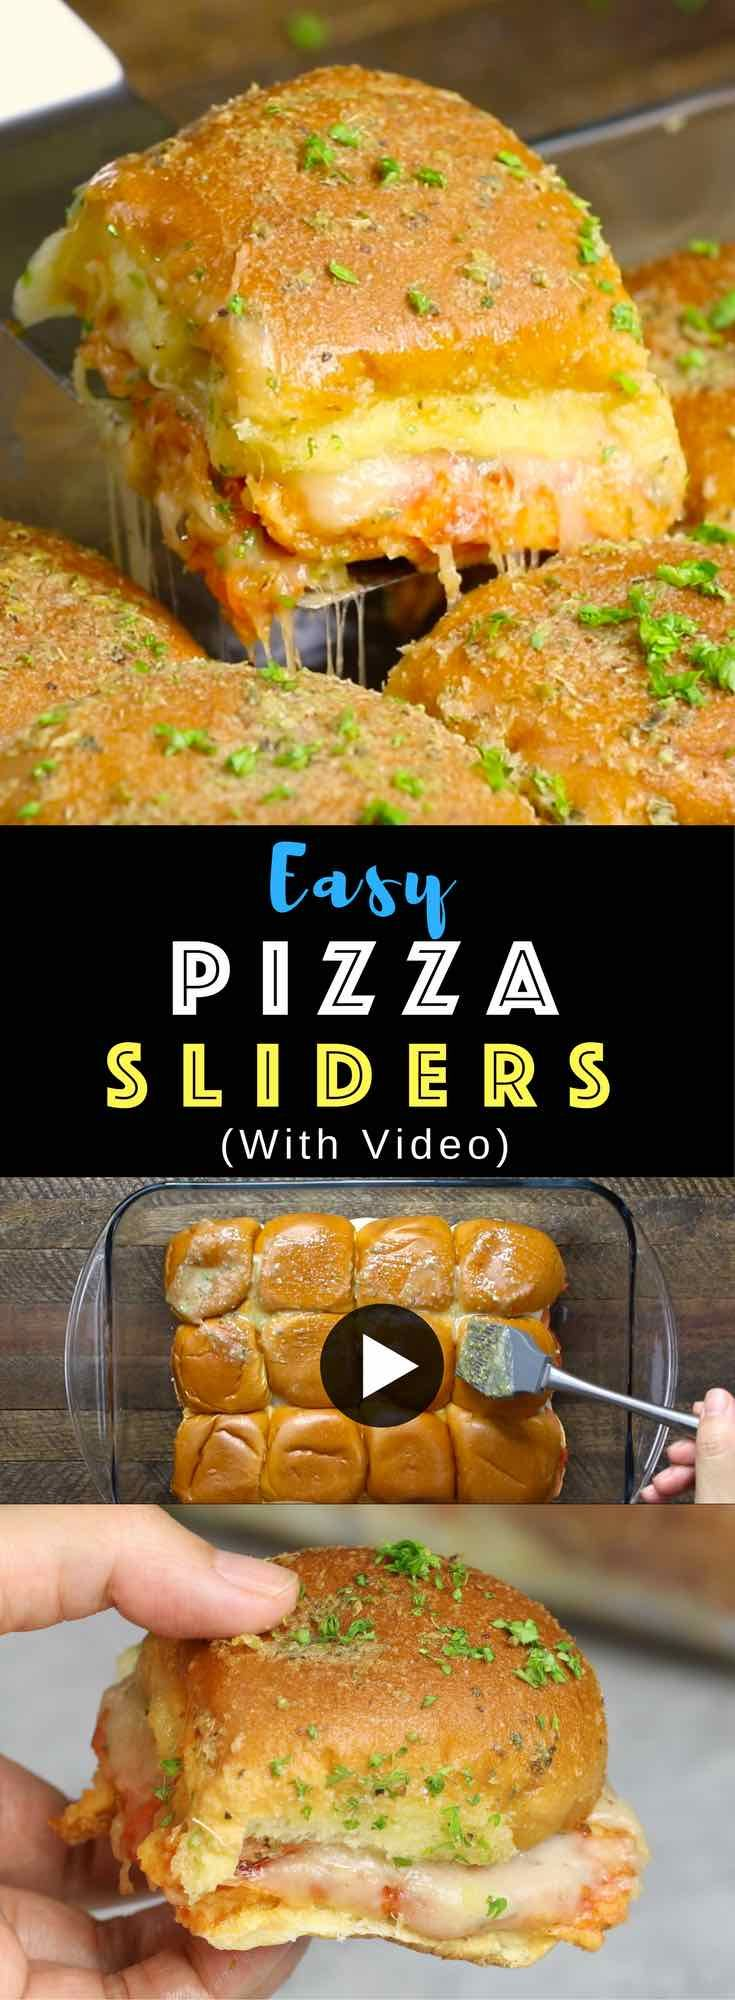 Pepperoni Pizza Sliders {Quick and Easy!} - TipBuzz